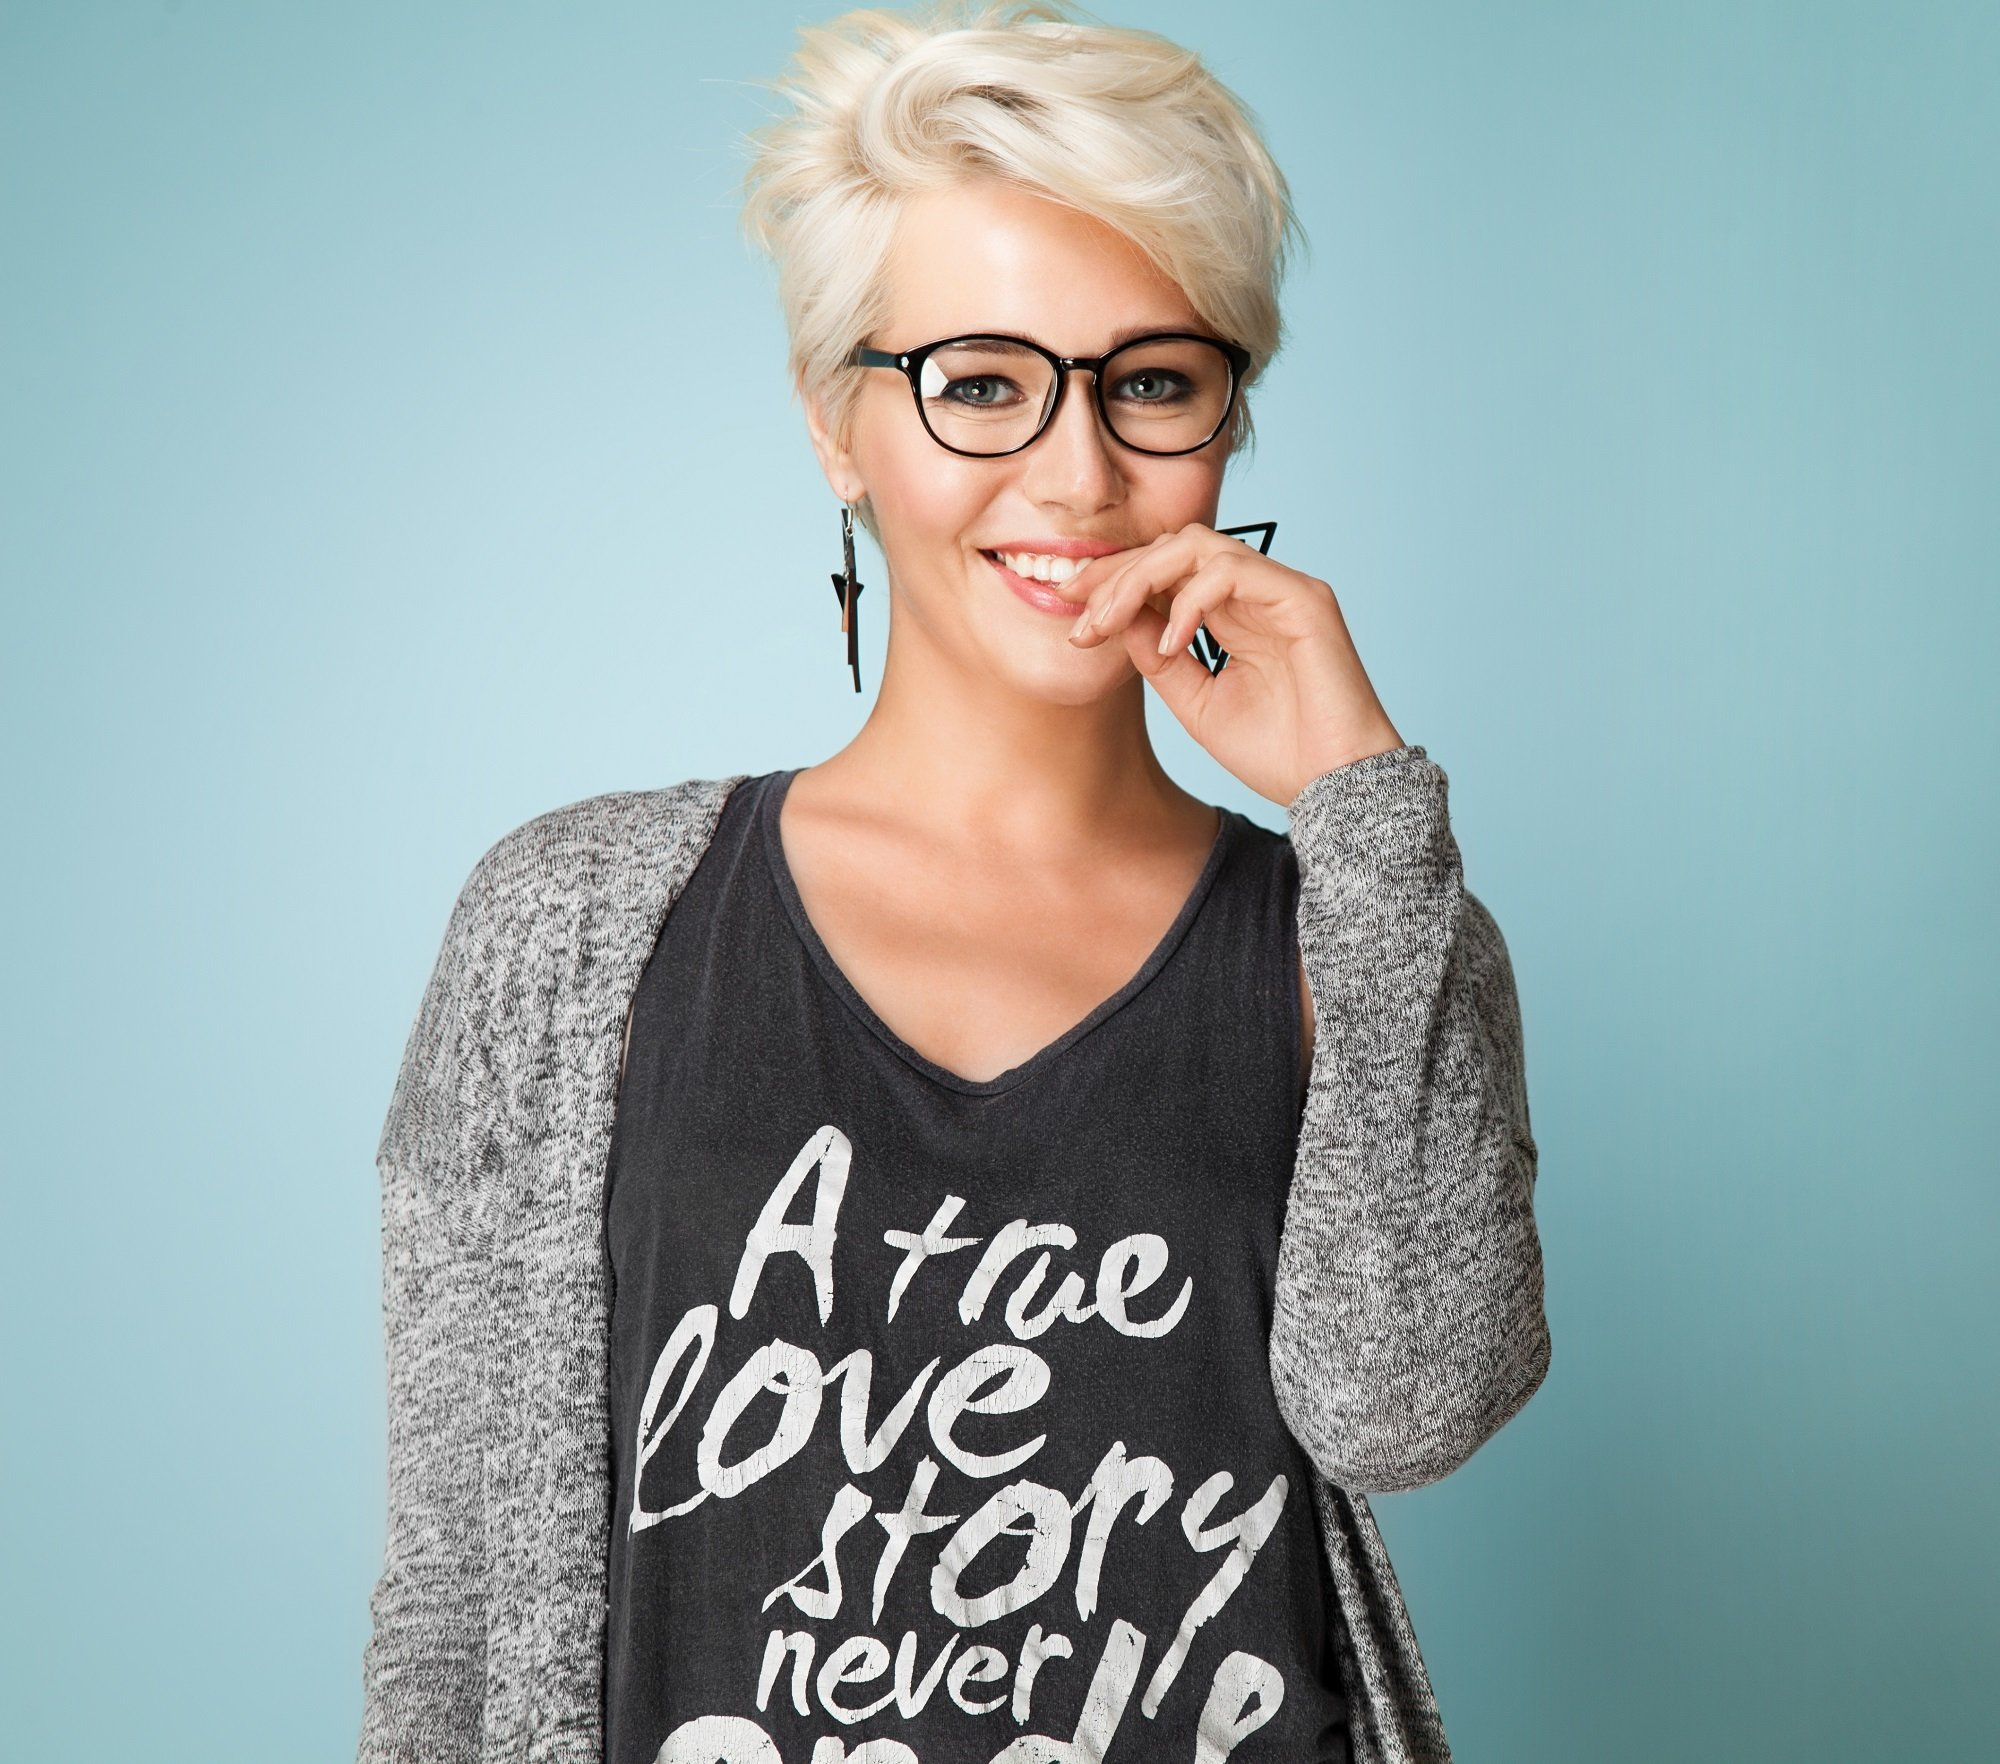 Short Blonde Hair Hairstyles And Haircuts To Try